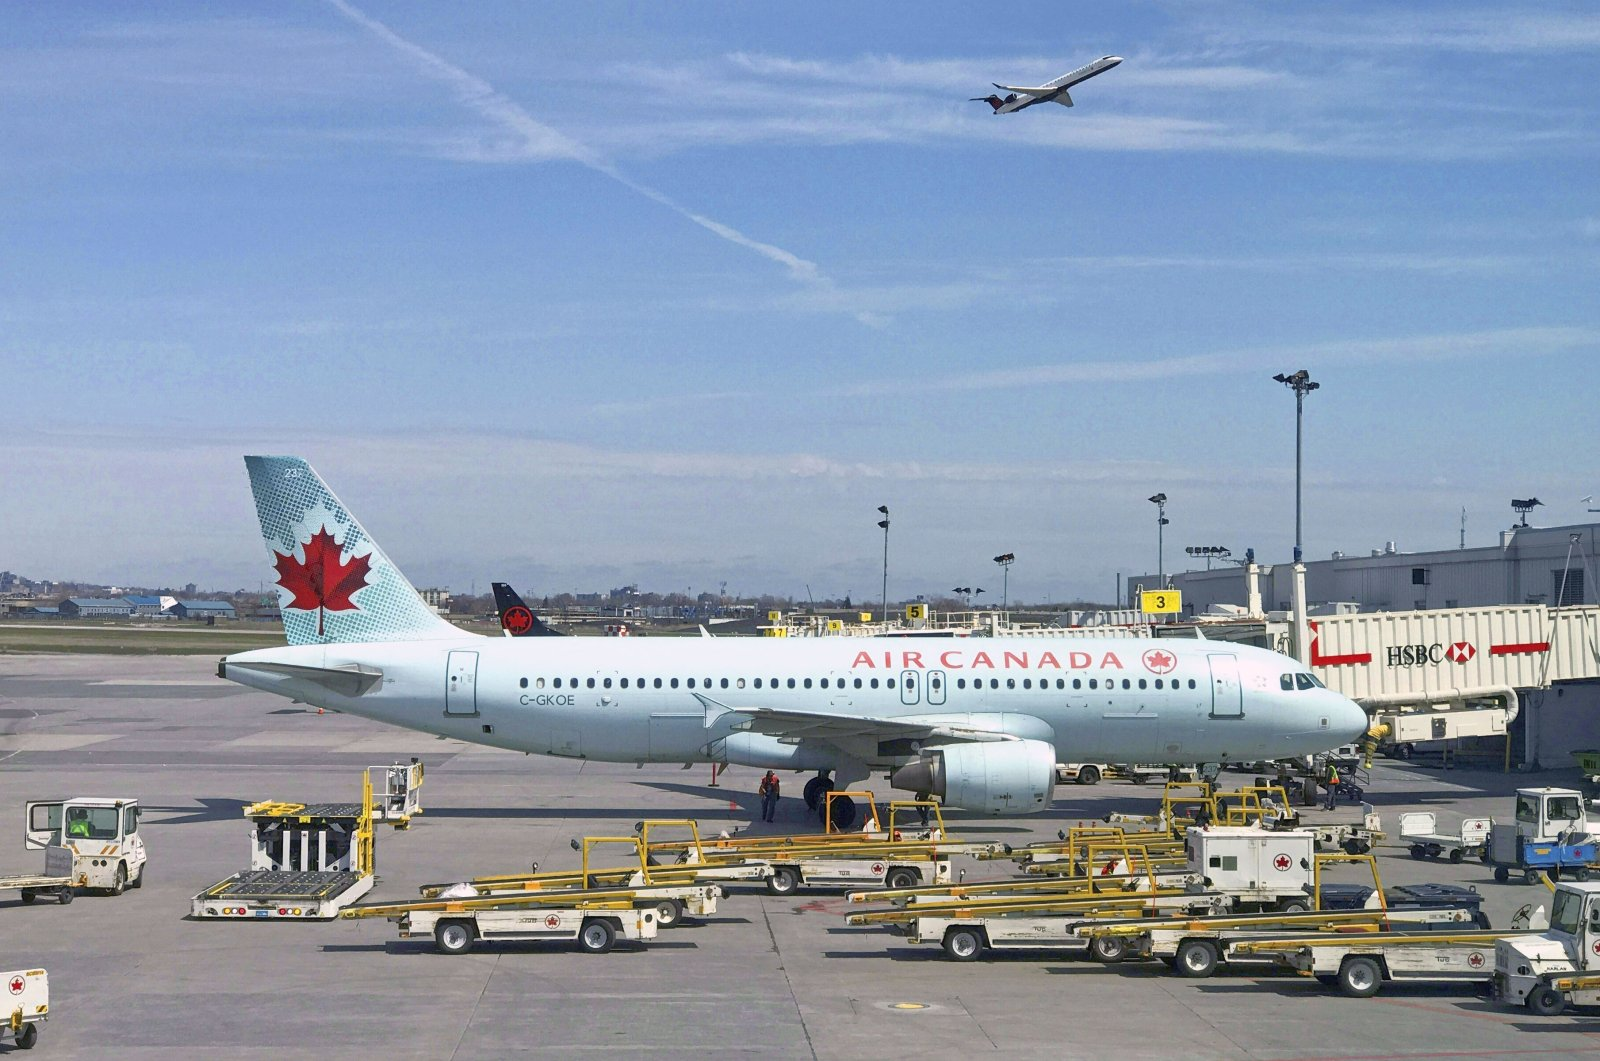 In this file photo, an Air Canada plane sits on the tarmac at Montreal-Pierre Elliott Trudeau International Airport near Montreal, Canada. (AFP Photo)